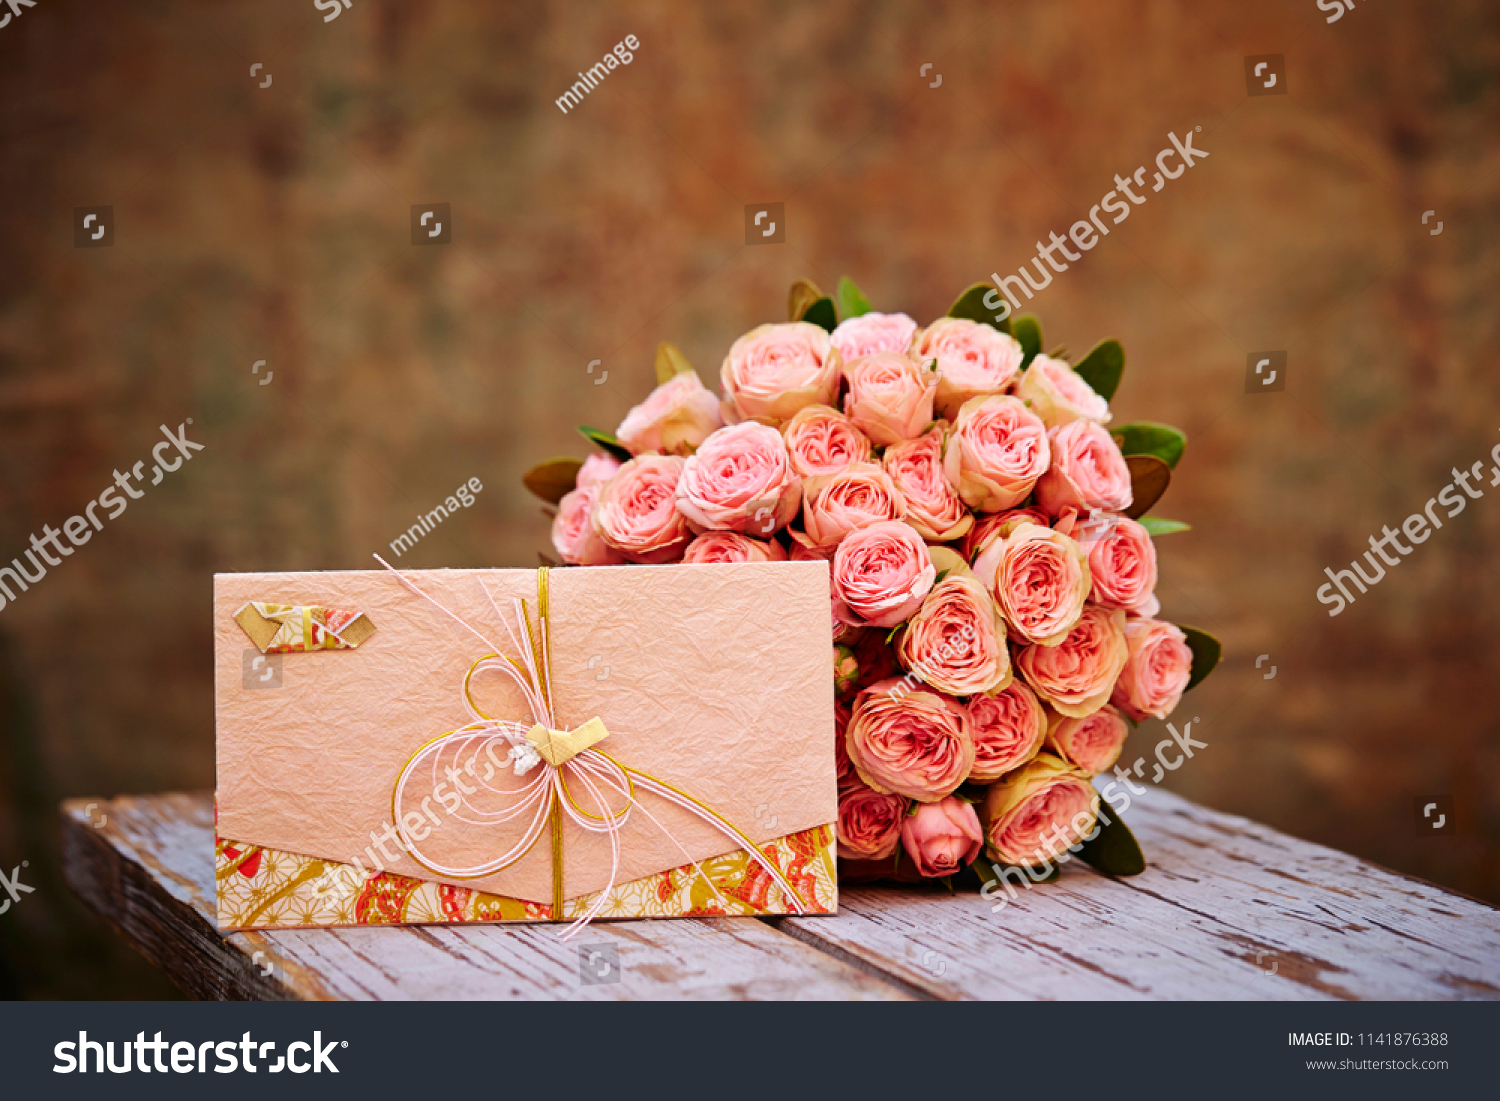 Flower Bouquet Japanese Envelope Stock Photo Edit Now 1141876388